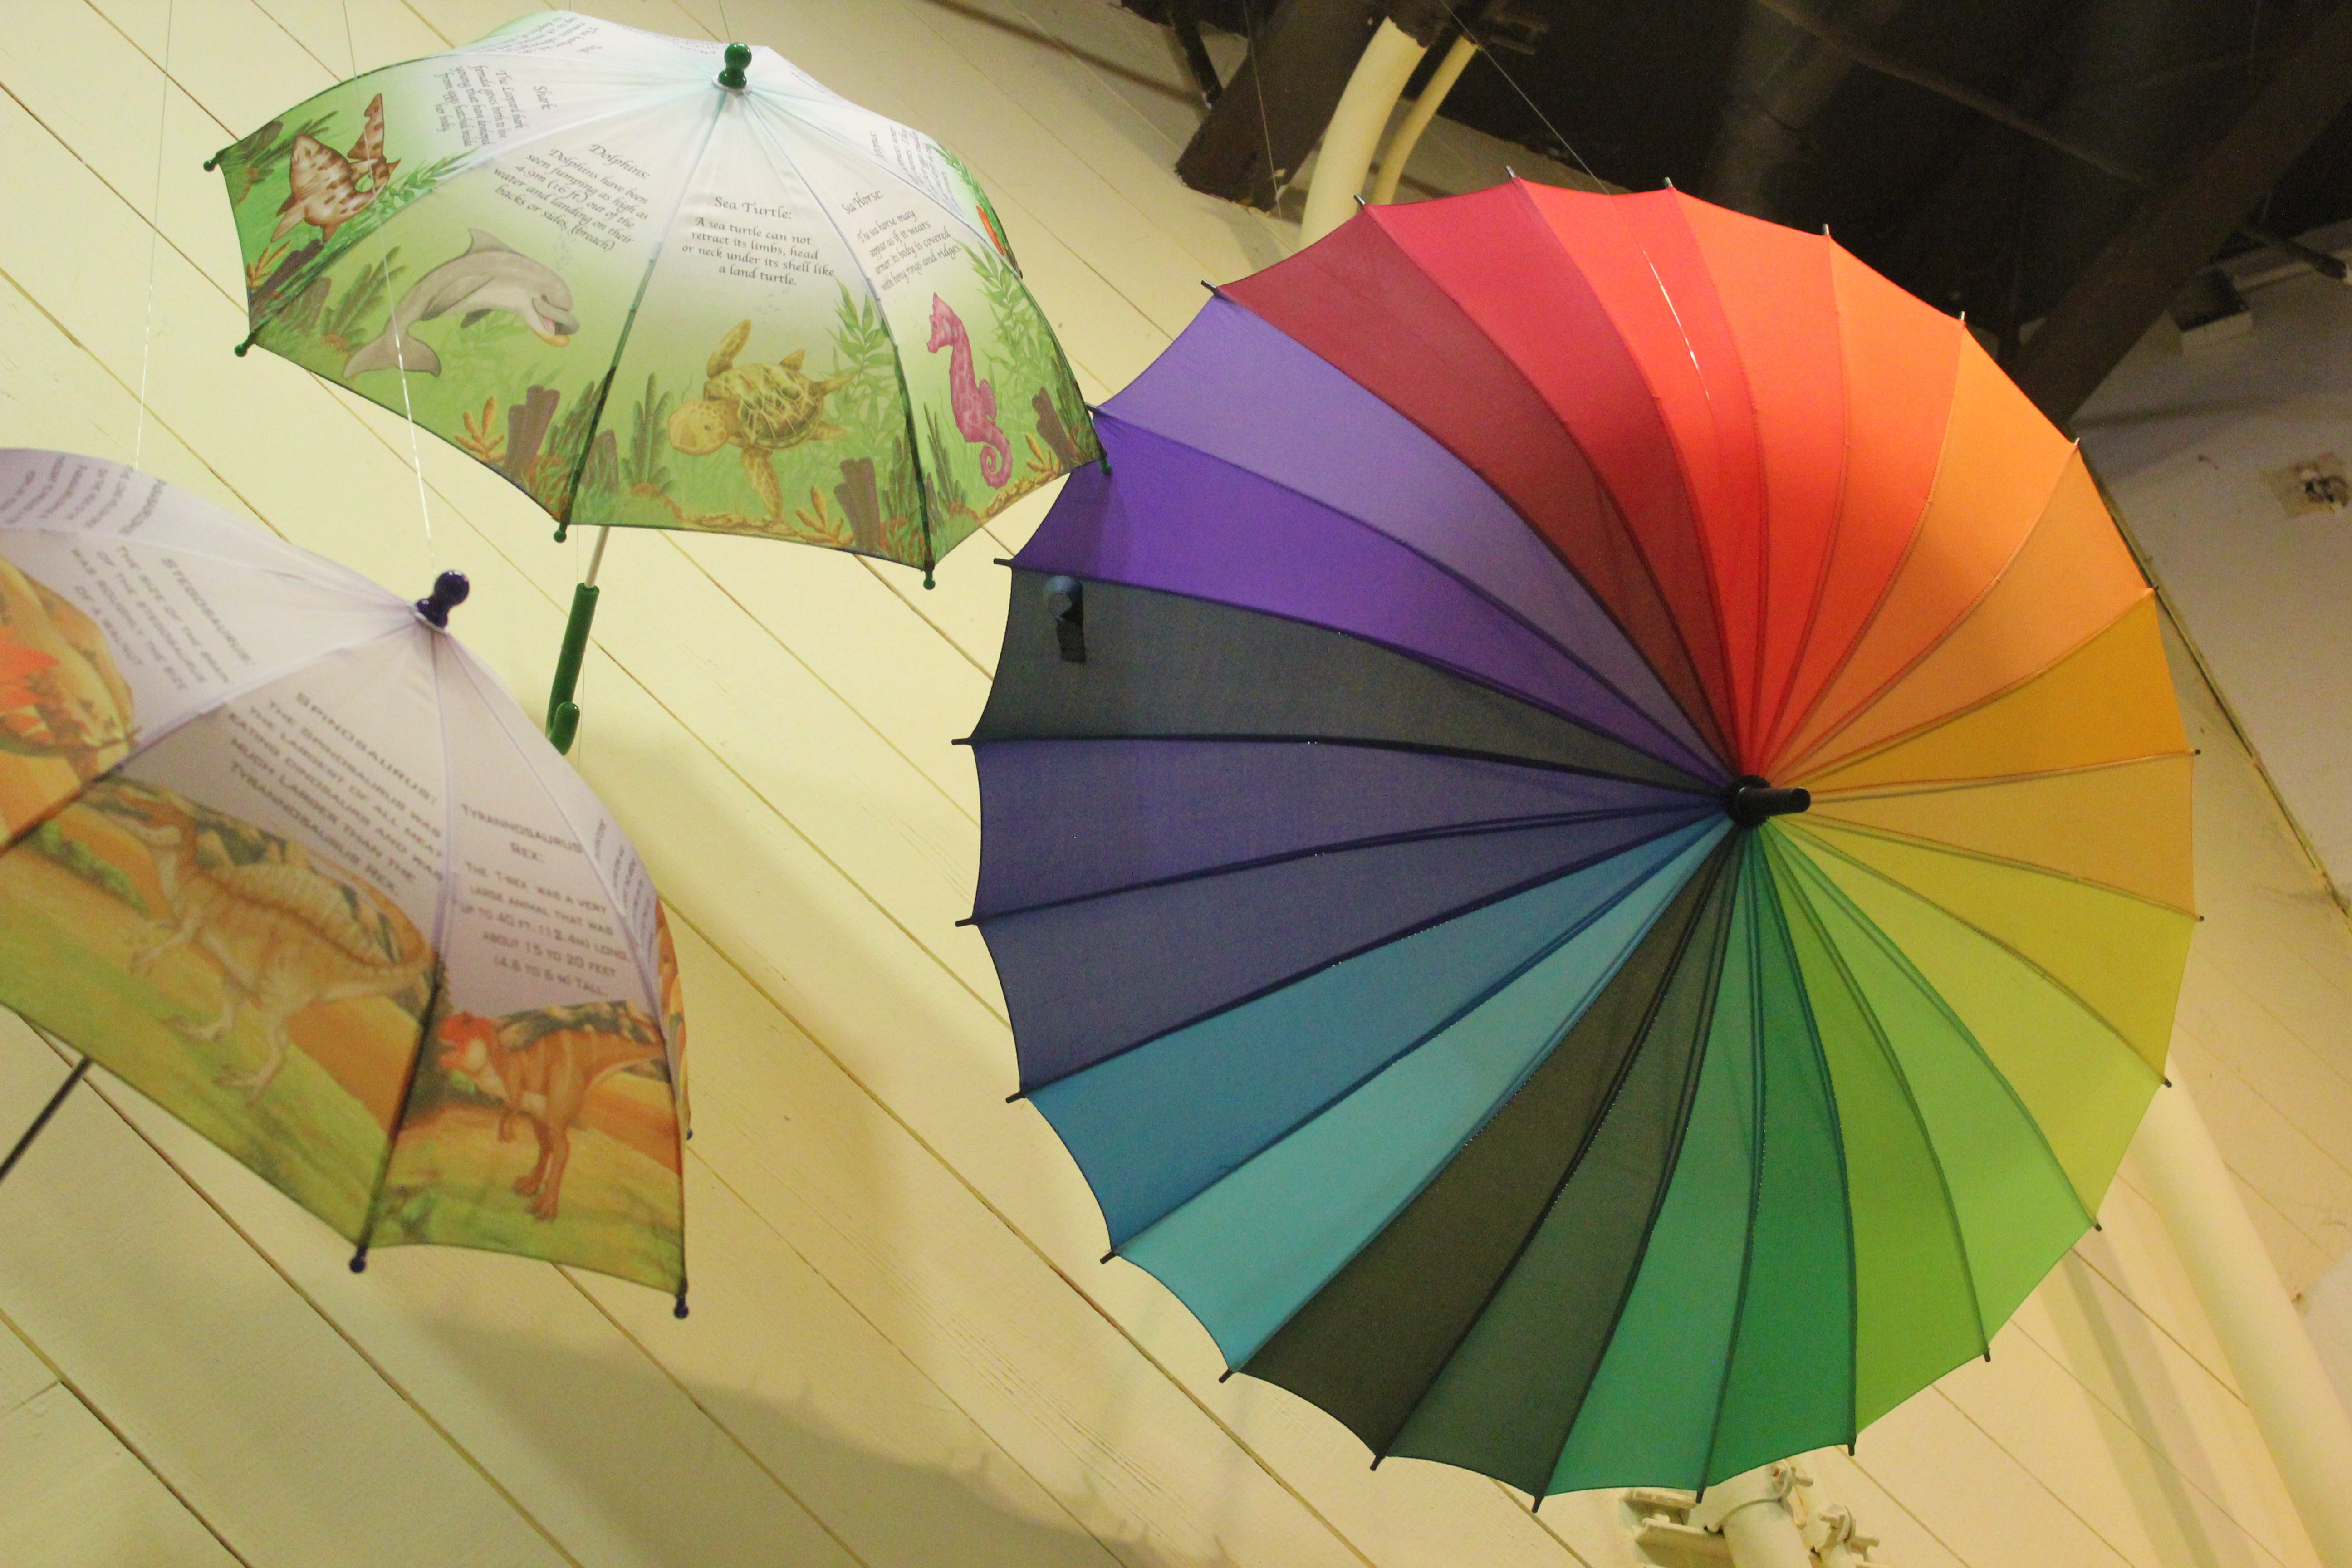 Free stock photo of colorful umbrellas